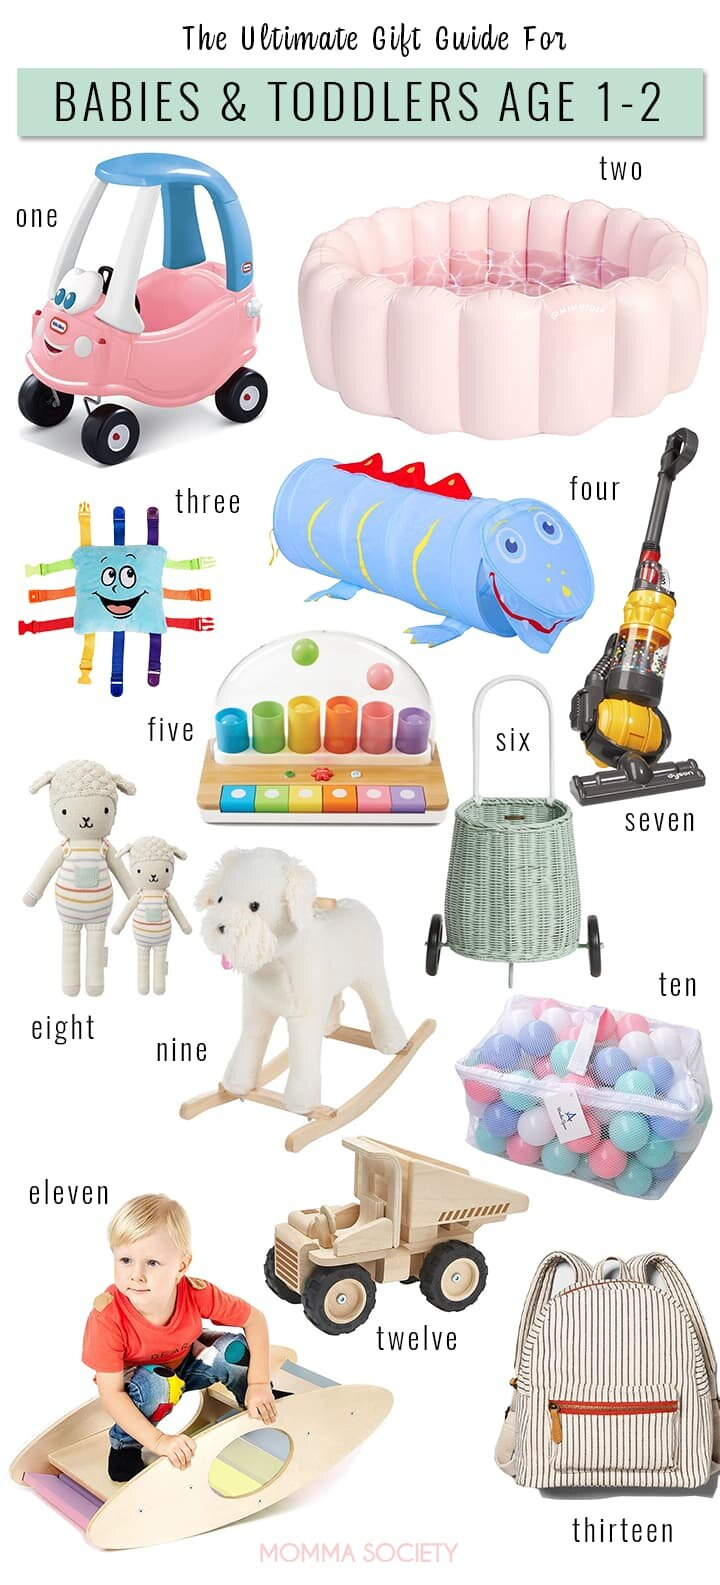 Best Holiday Gift Ideas For Babies Toddlers Age 1 2 Momma Society